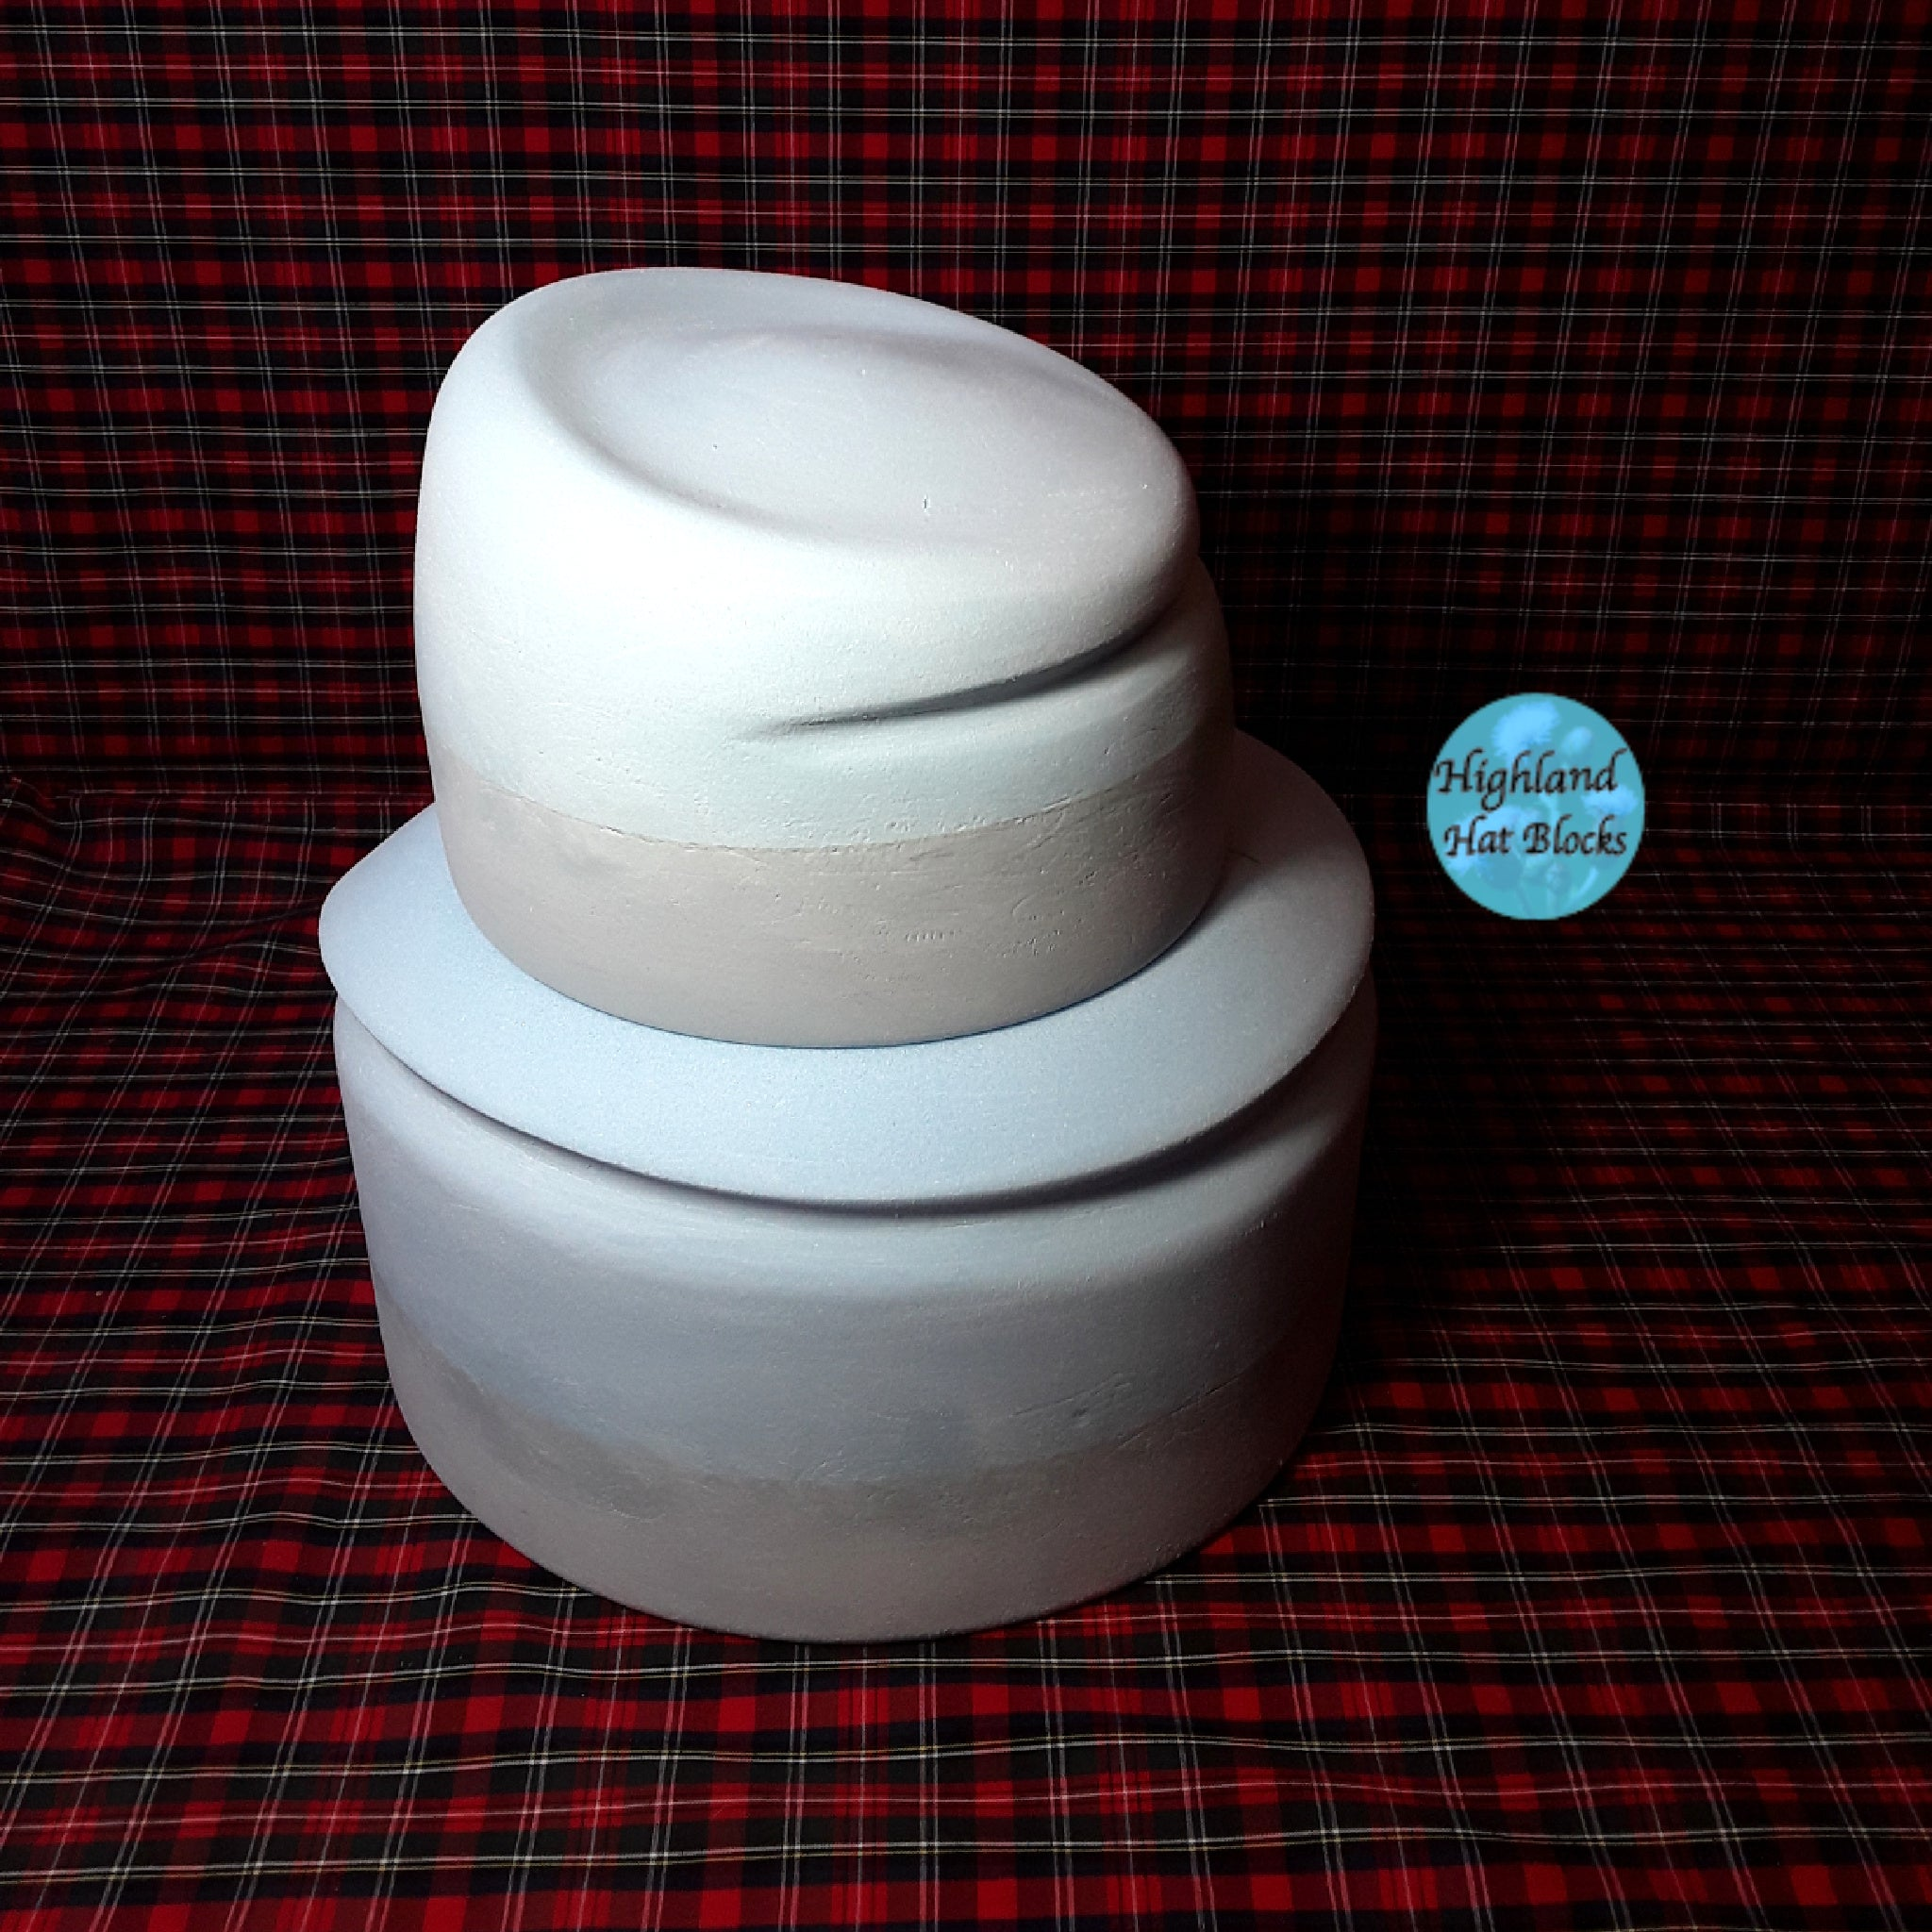 HHS488 Sculptured Two Piece Hat Block Set